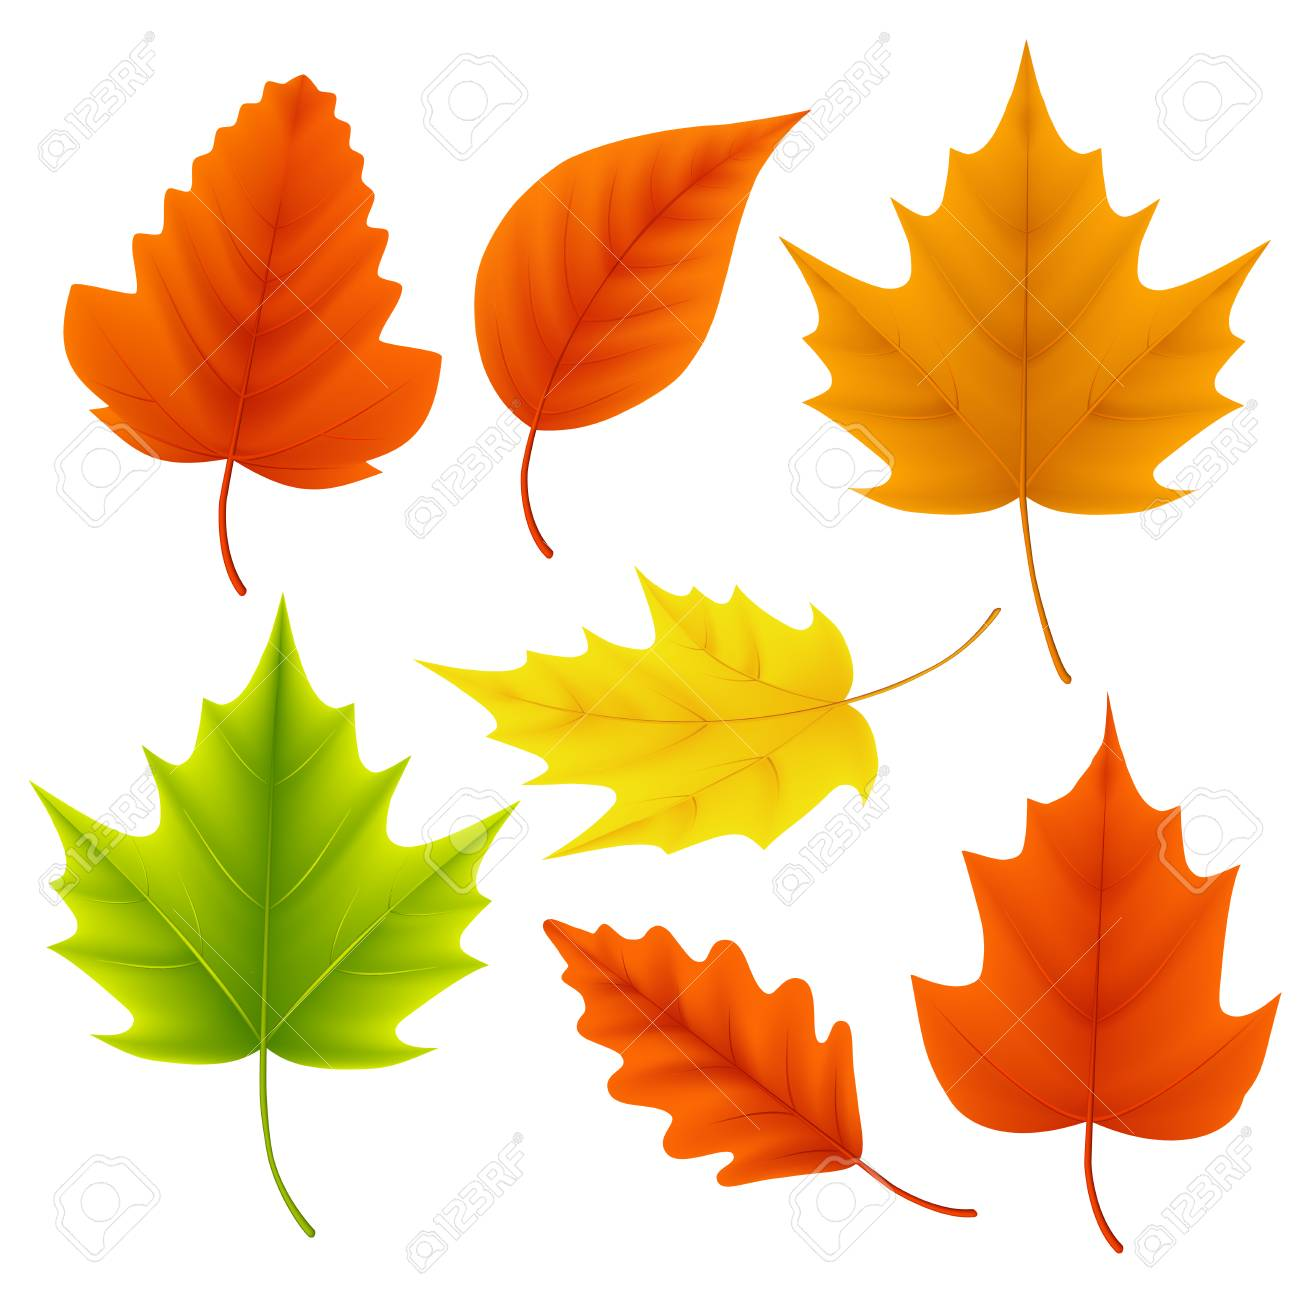 fall leaves vector set for autumn season and seasonal elements rh 123rf com fall leaves vector background fall leaves outline vector